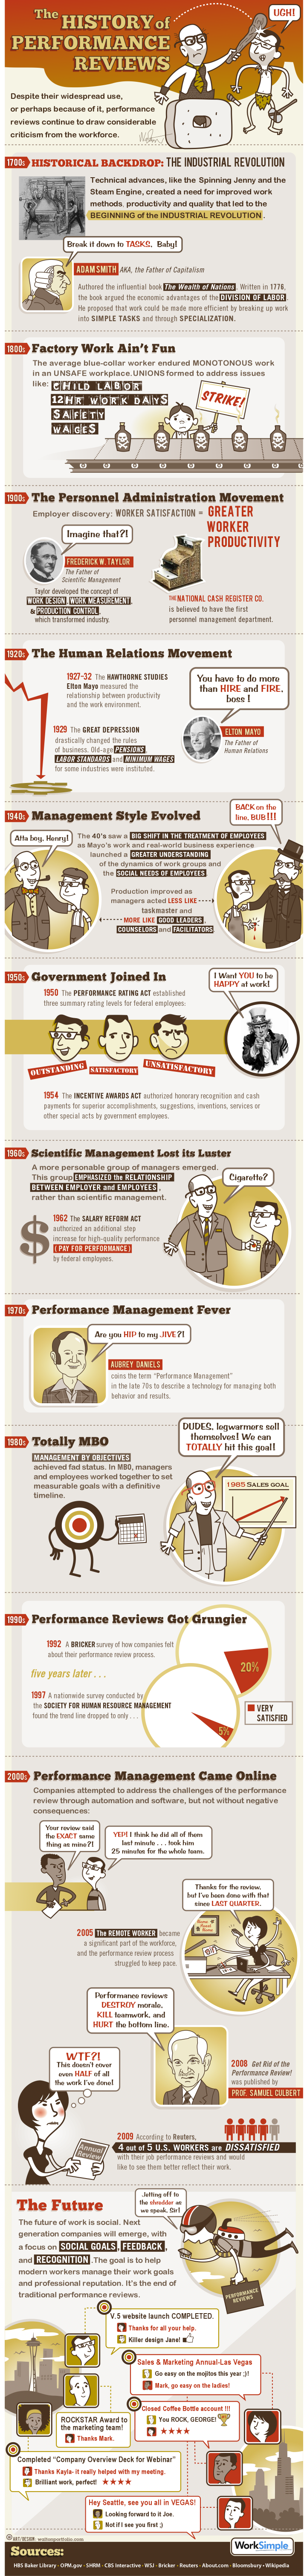 Performance review history - infographic from WorkSimple